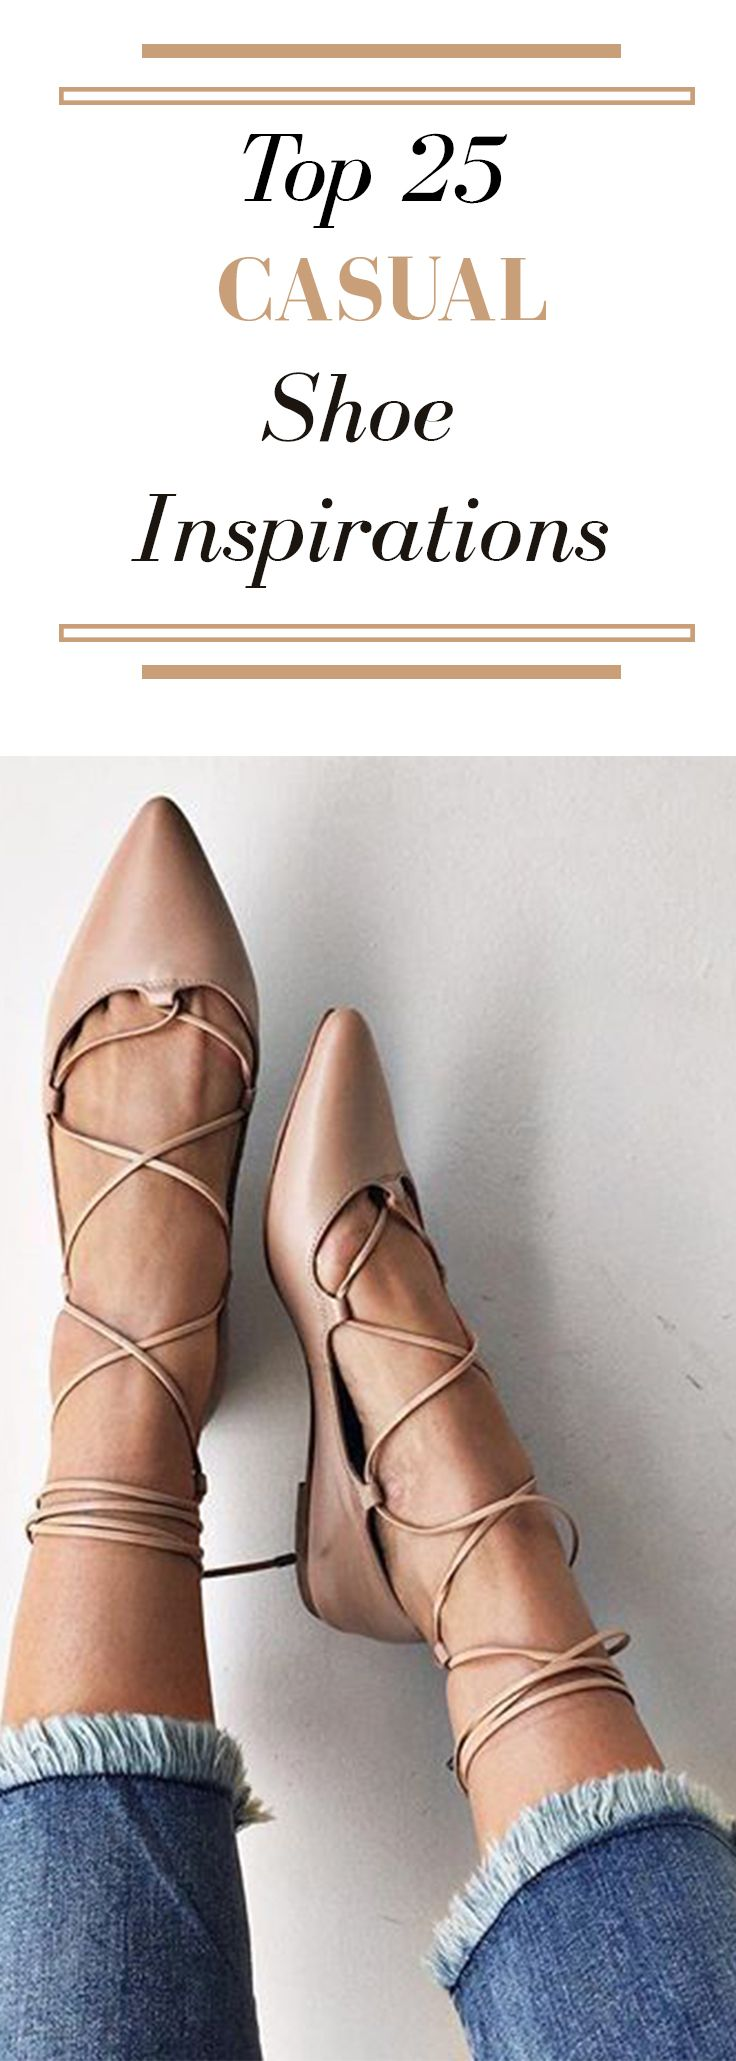 Top 25 shoe inspirations for a casual day.